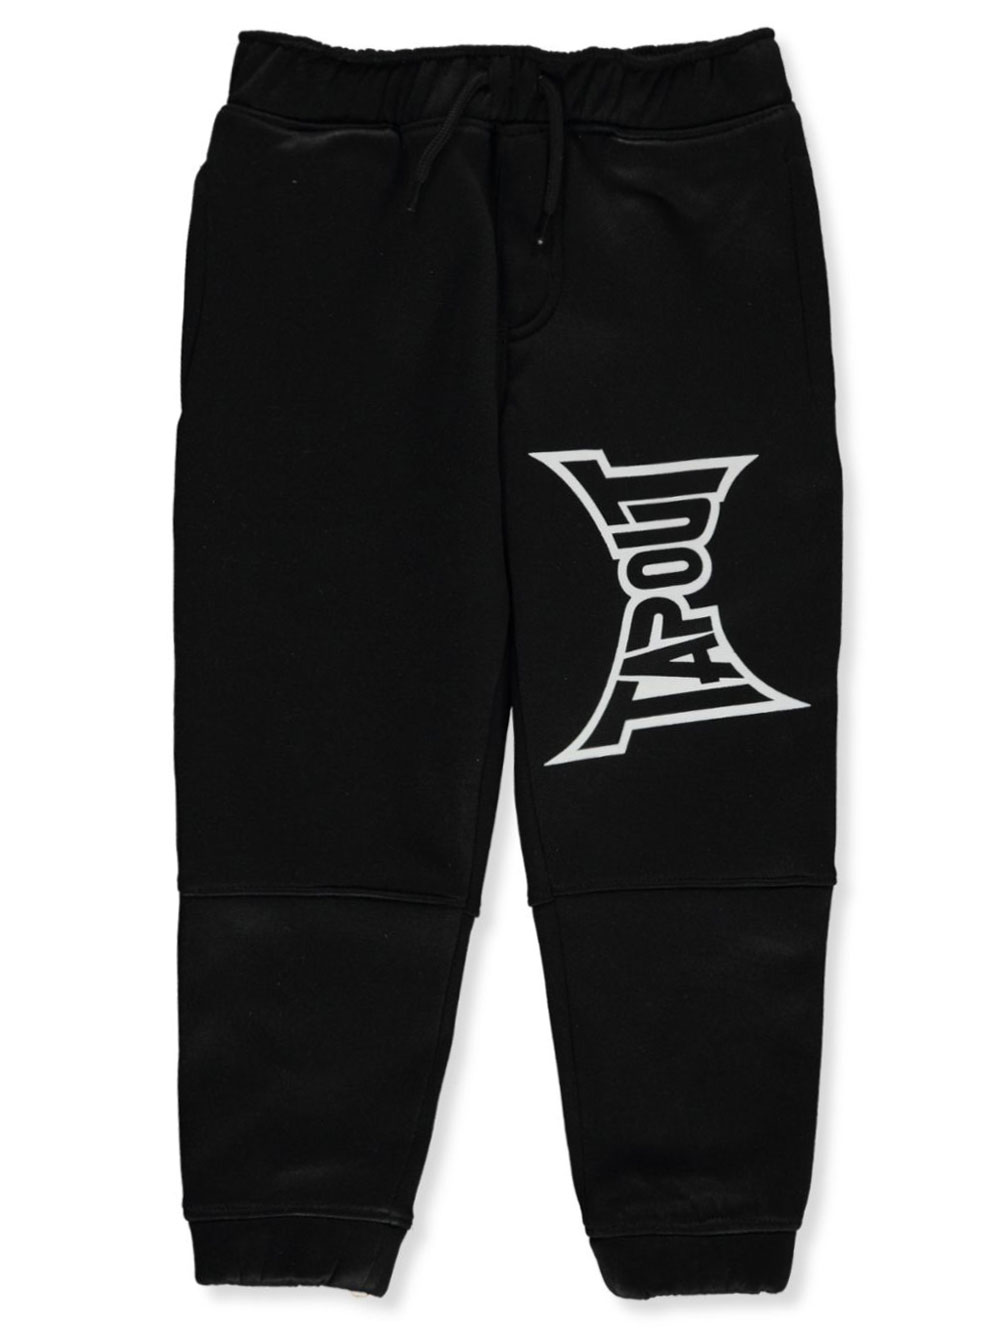 Tapout Jeans